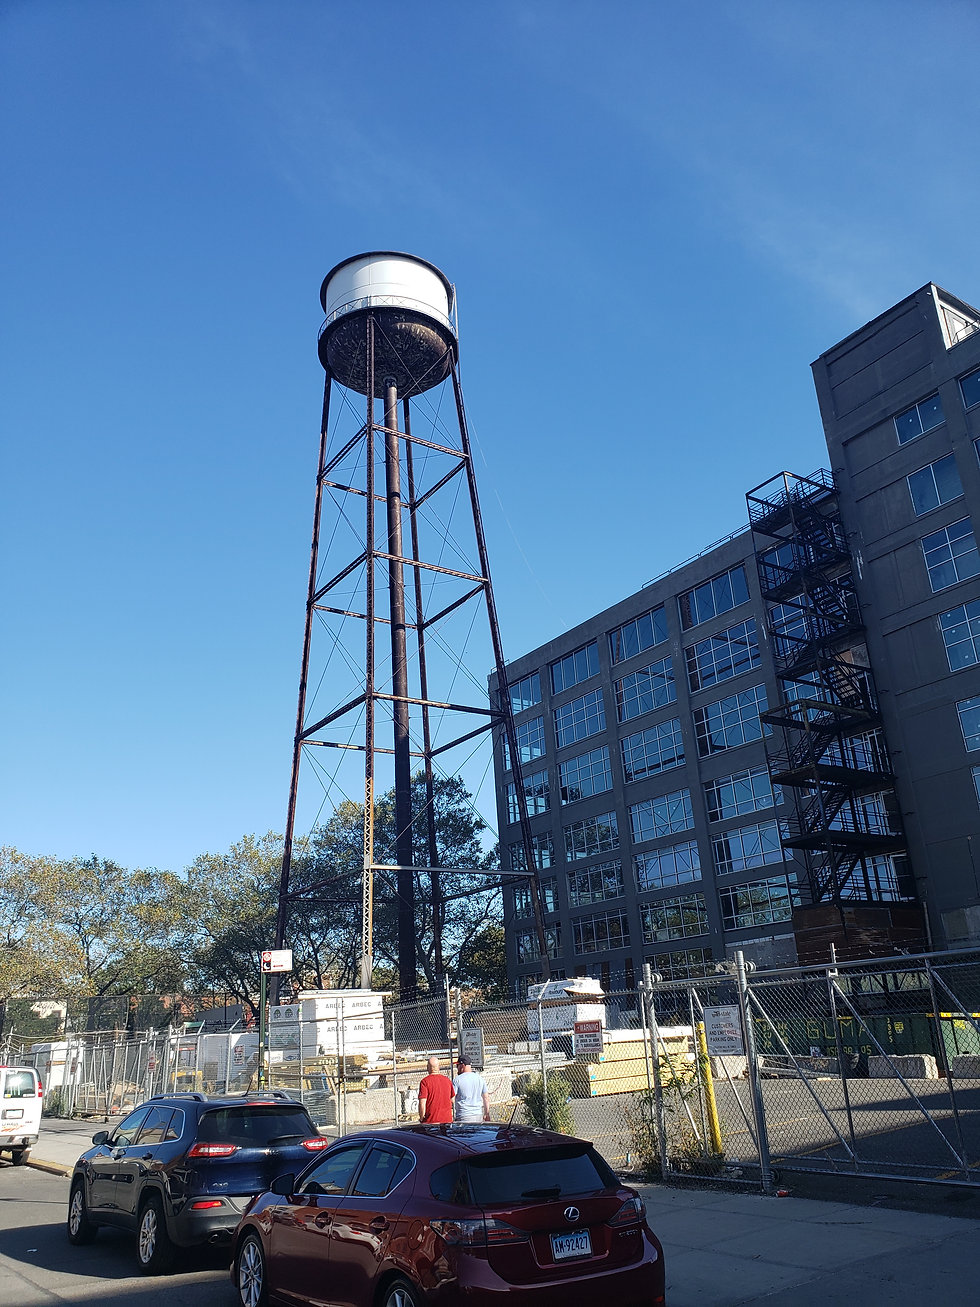 Exterior view of Union Crossing office complex in the Bronx